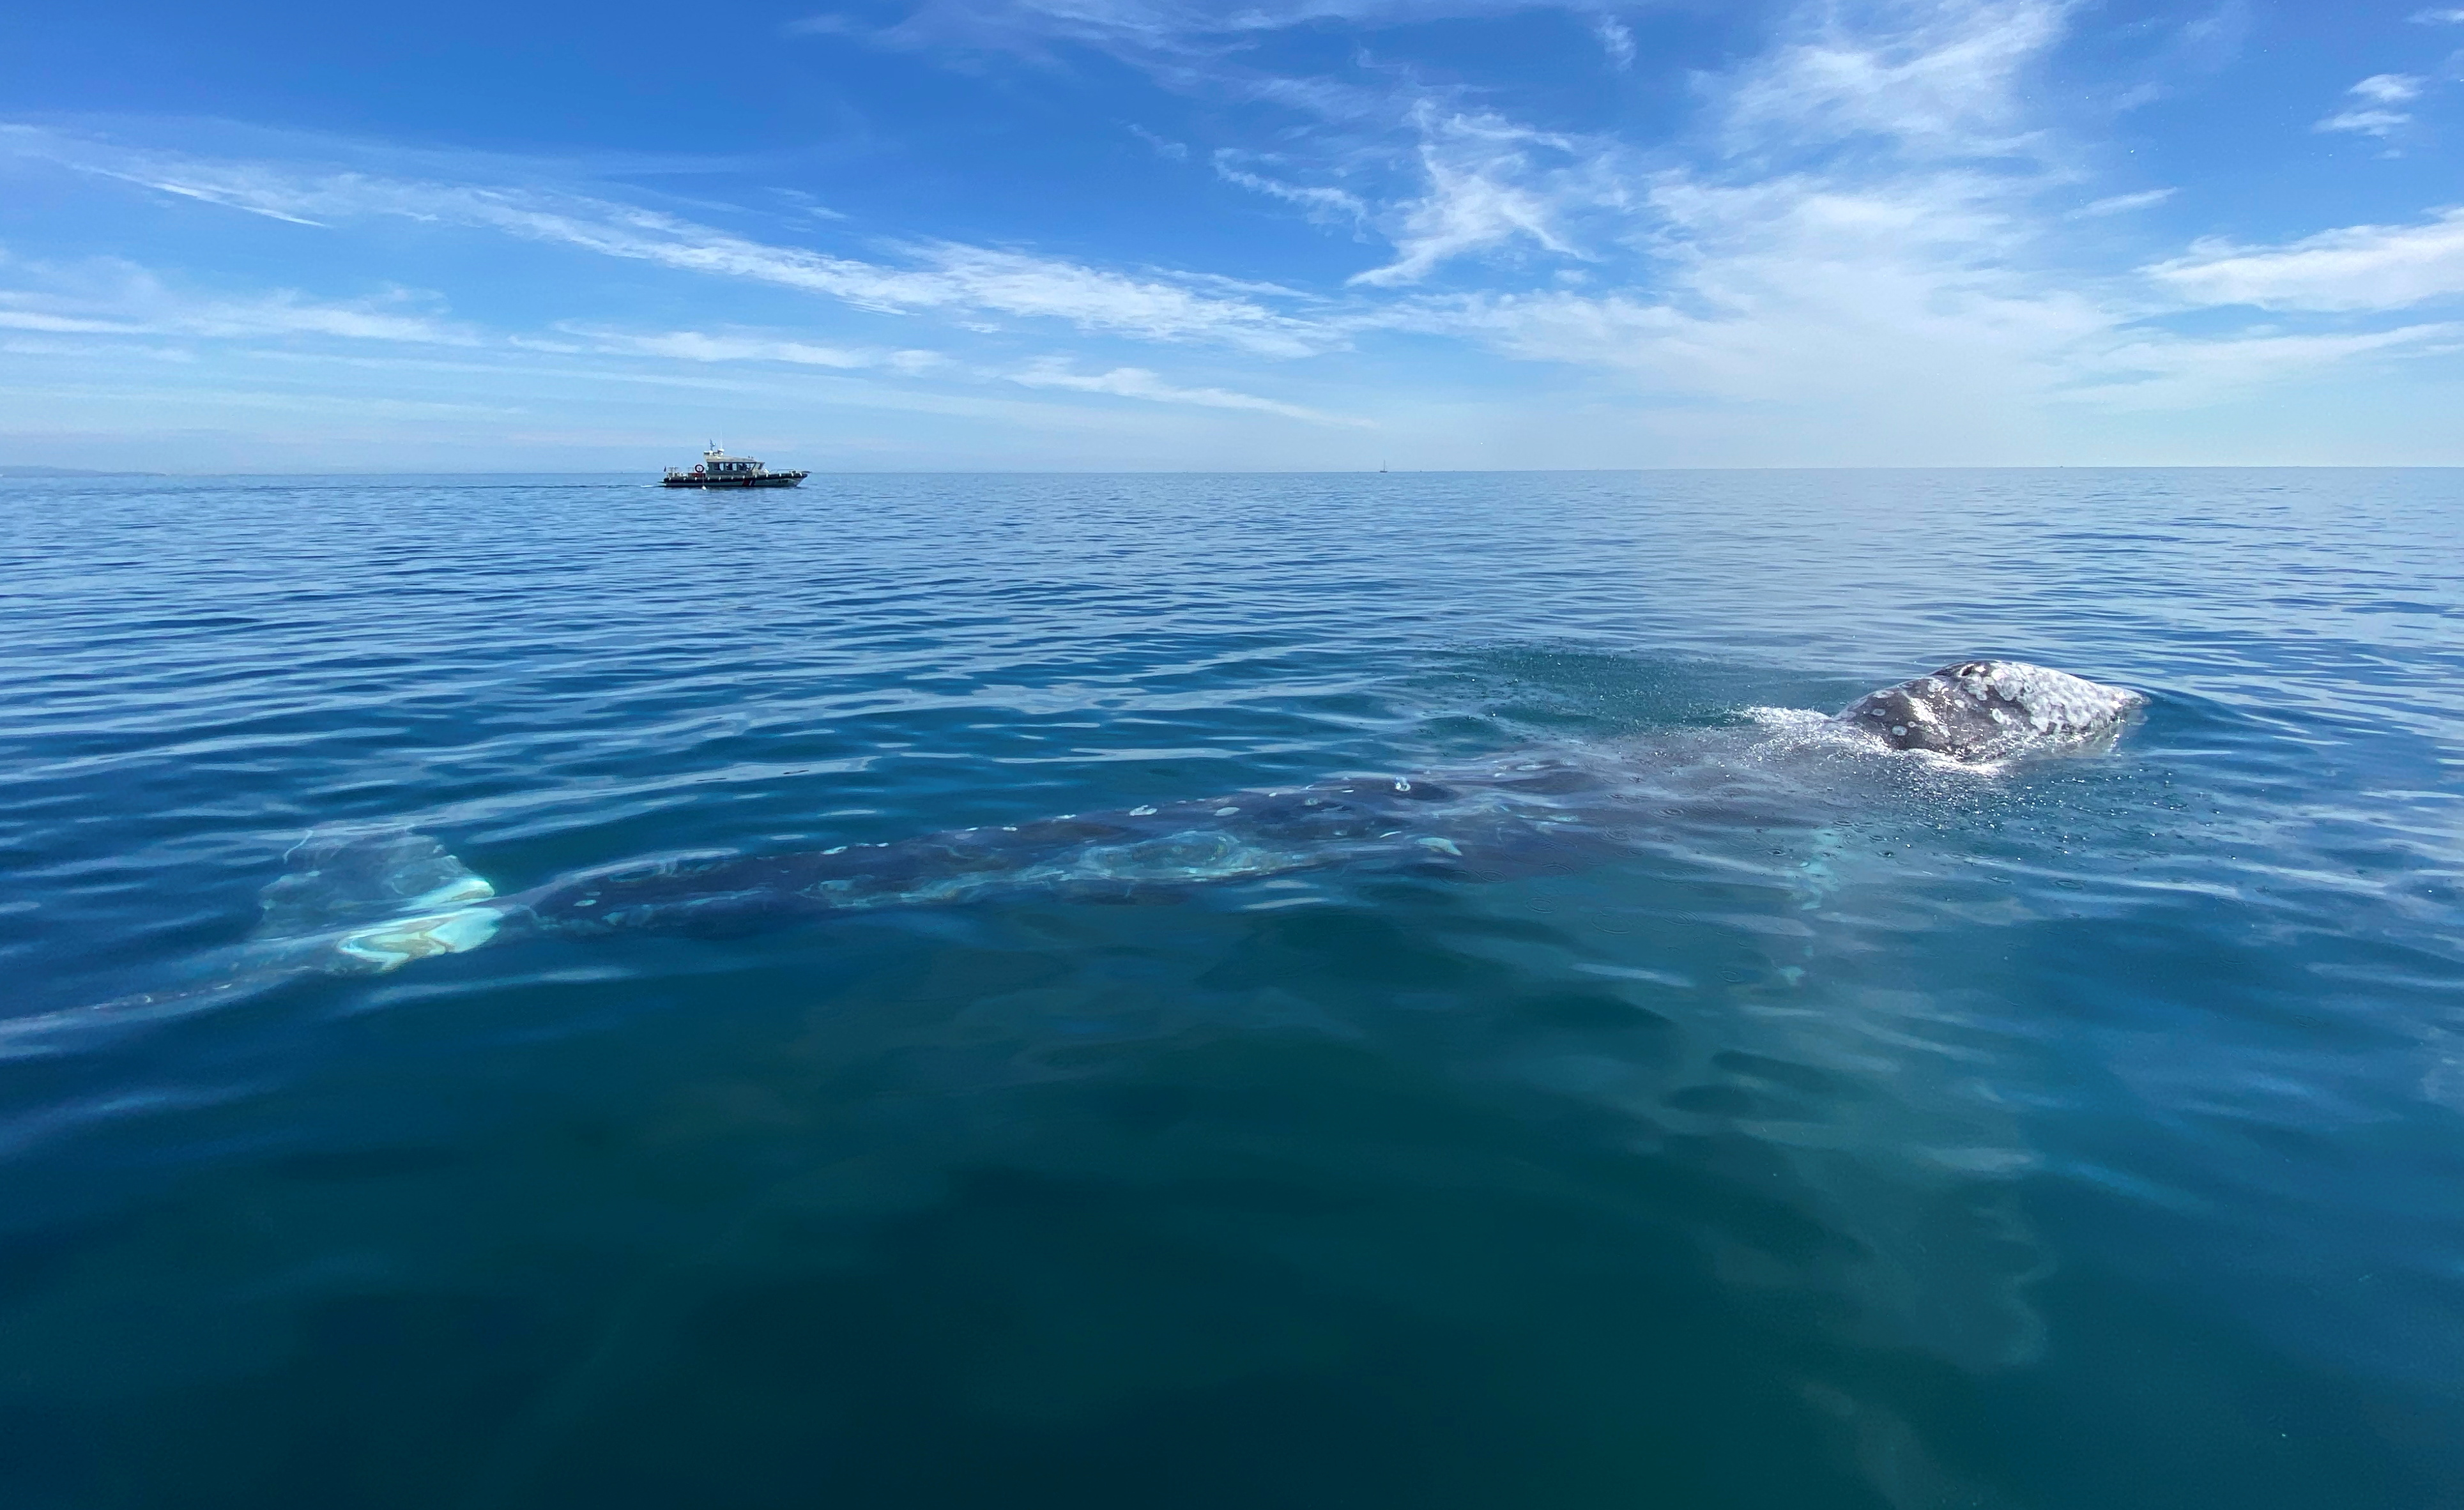 Wally, the 15 month old gray whale, swims in the Mediterranean Sea past the coast of Argeles-Sur-Mer, France, May 6, 2021. REUTERS/Alexandre Minguez